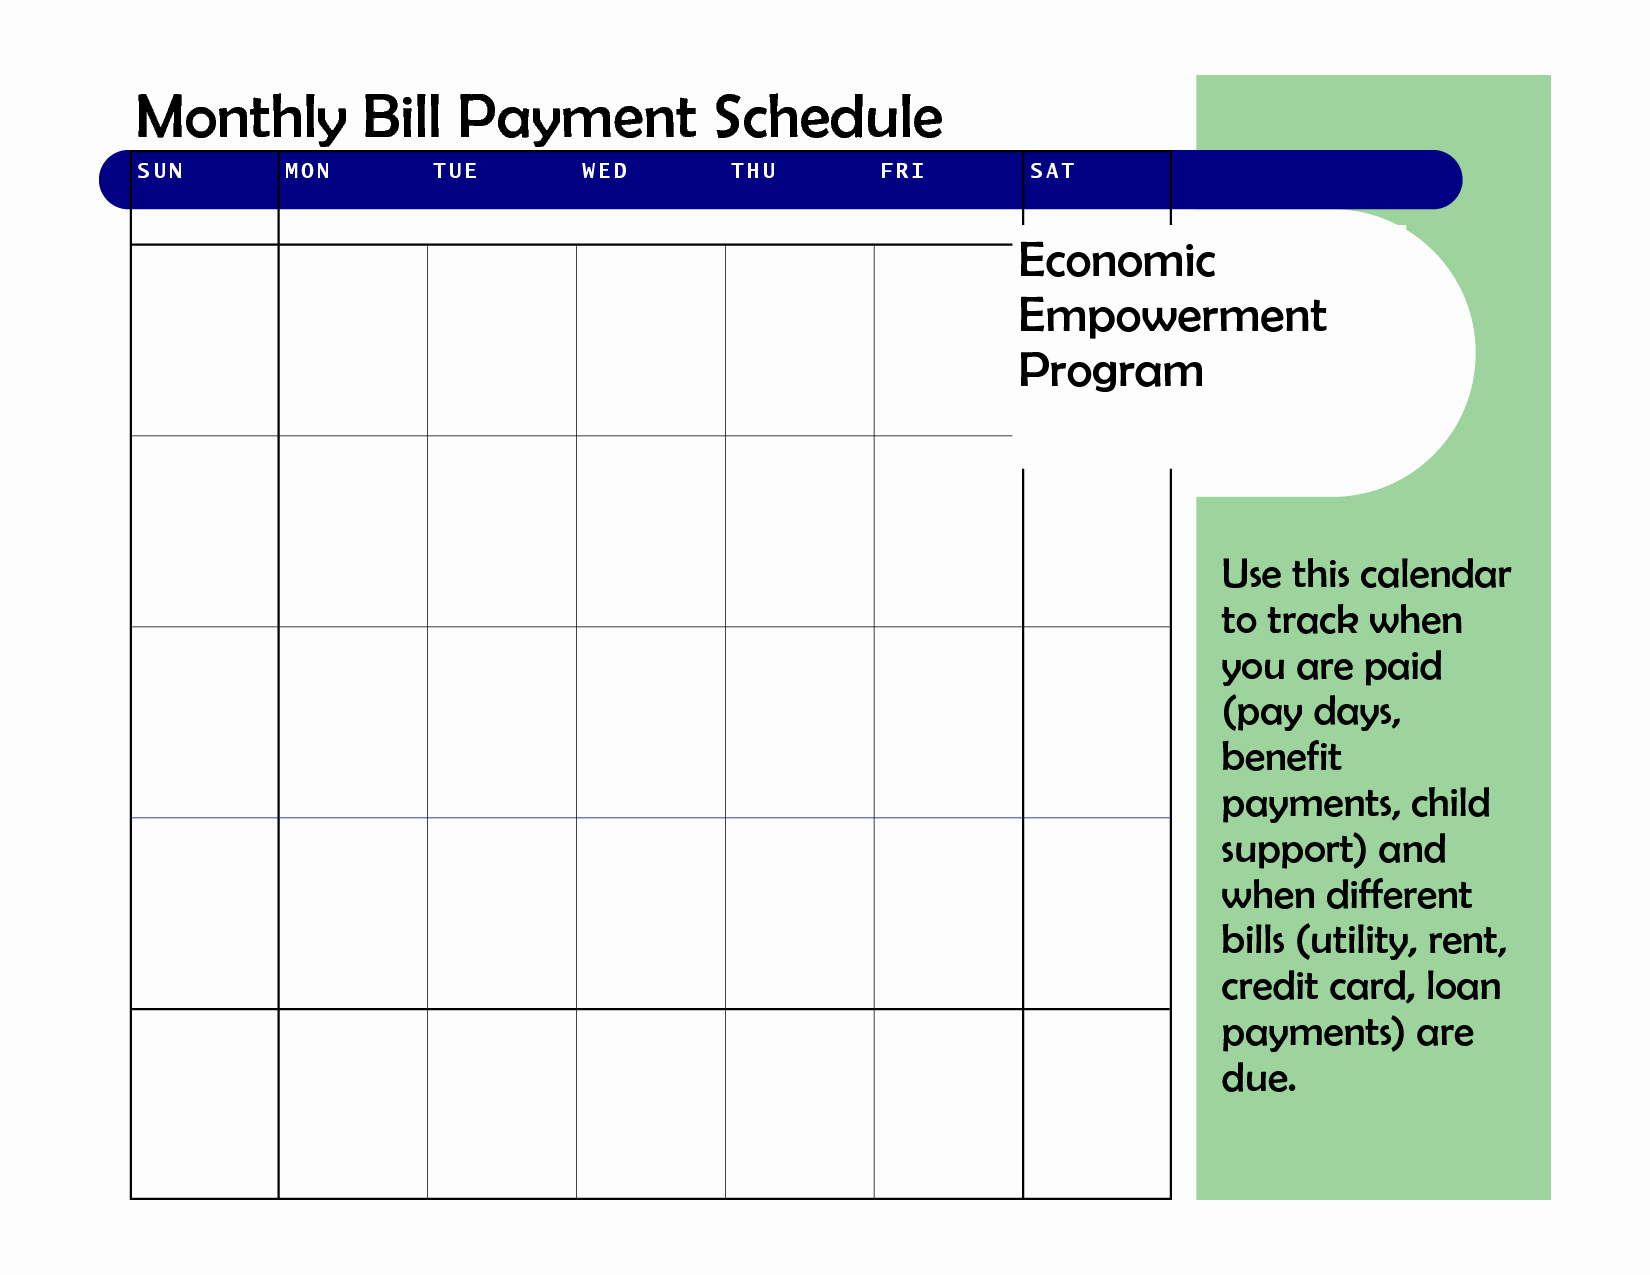 Bill Payment Template Free New Monthly Based Bill Payment Schedule Template Vatansun